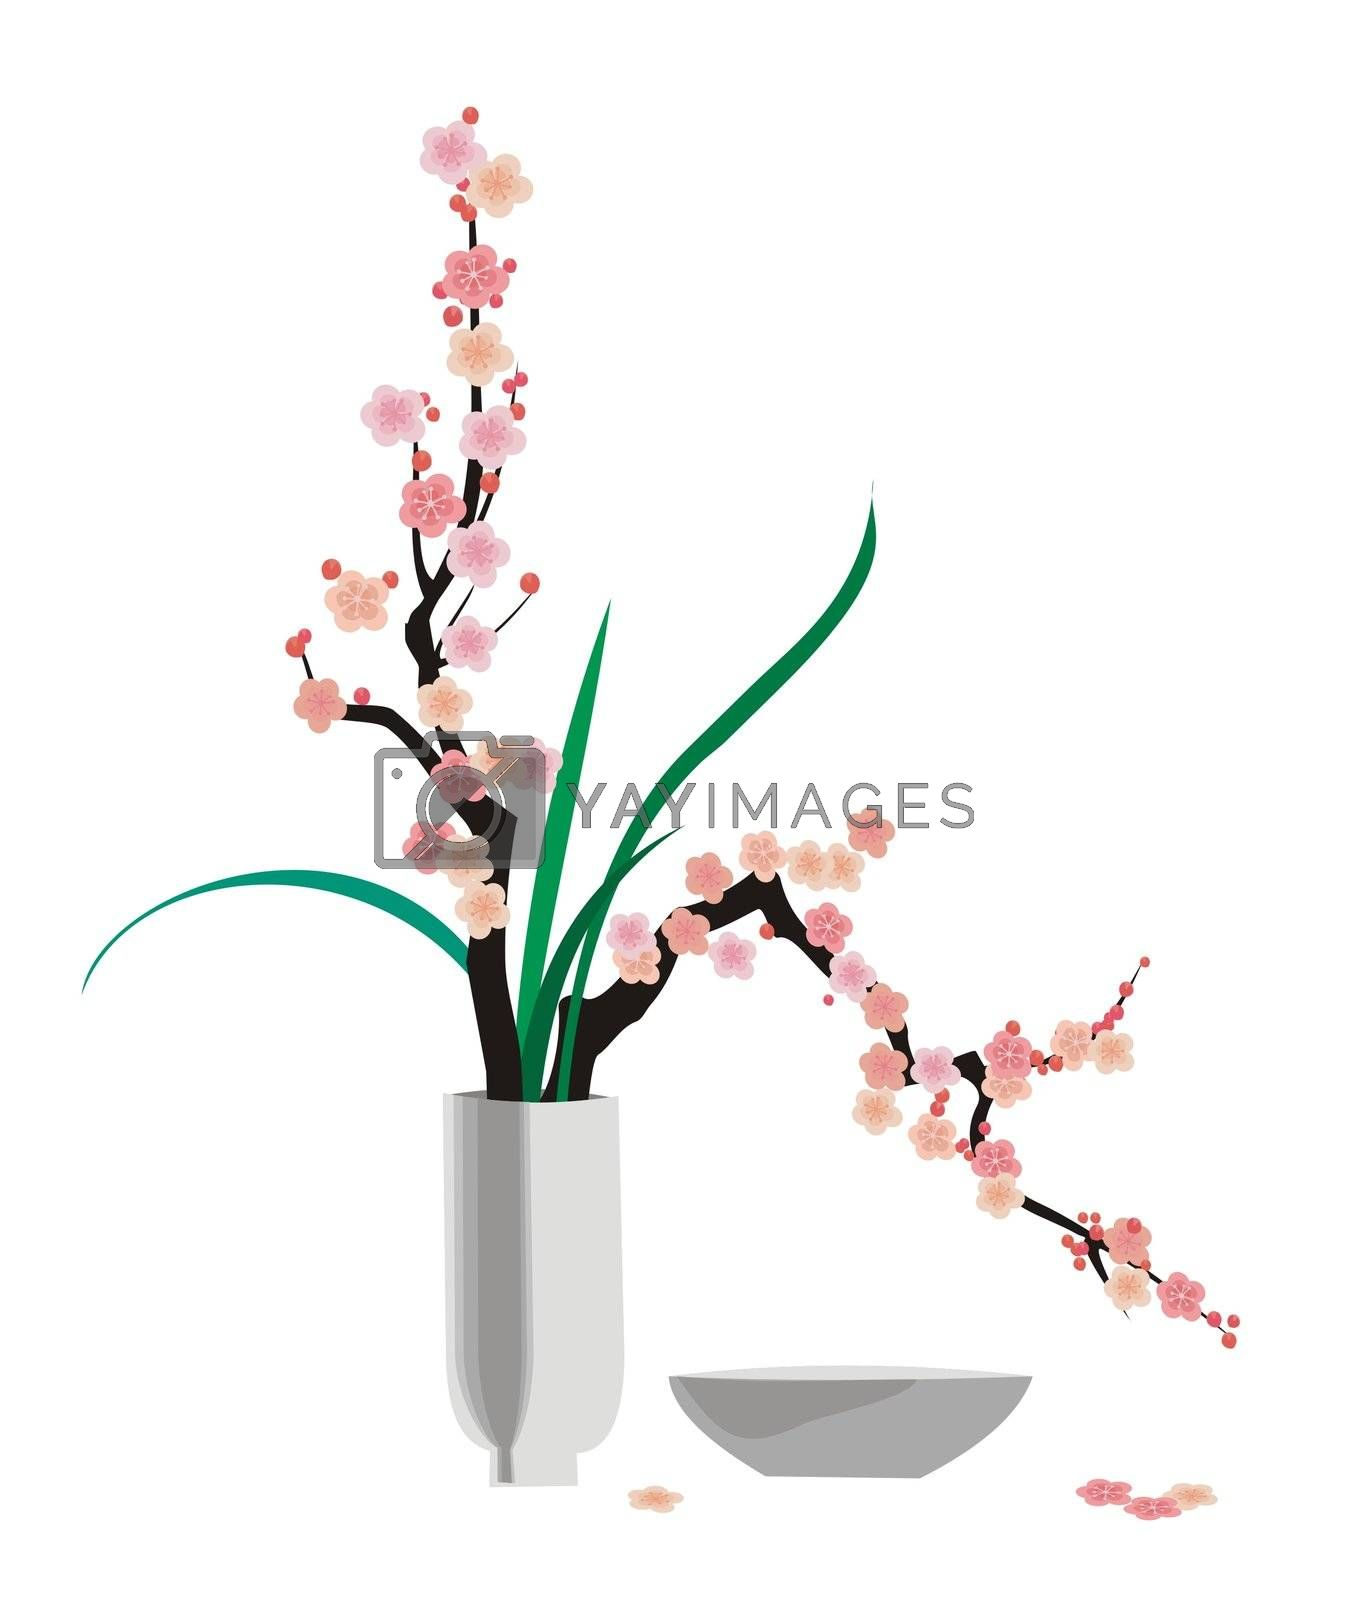 Ikebana-style arranged flowering cherry twigs, illustration